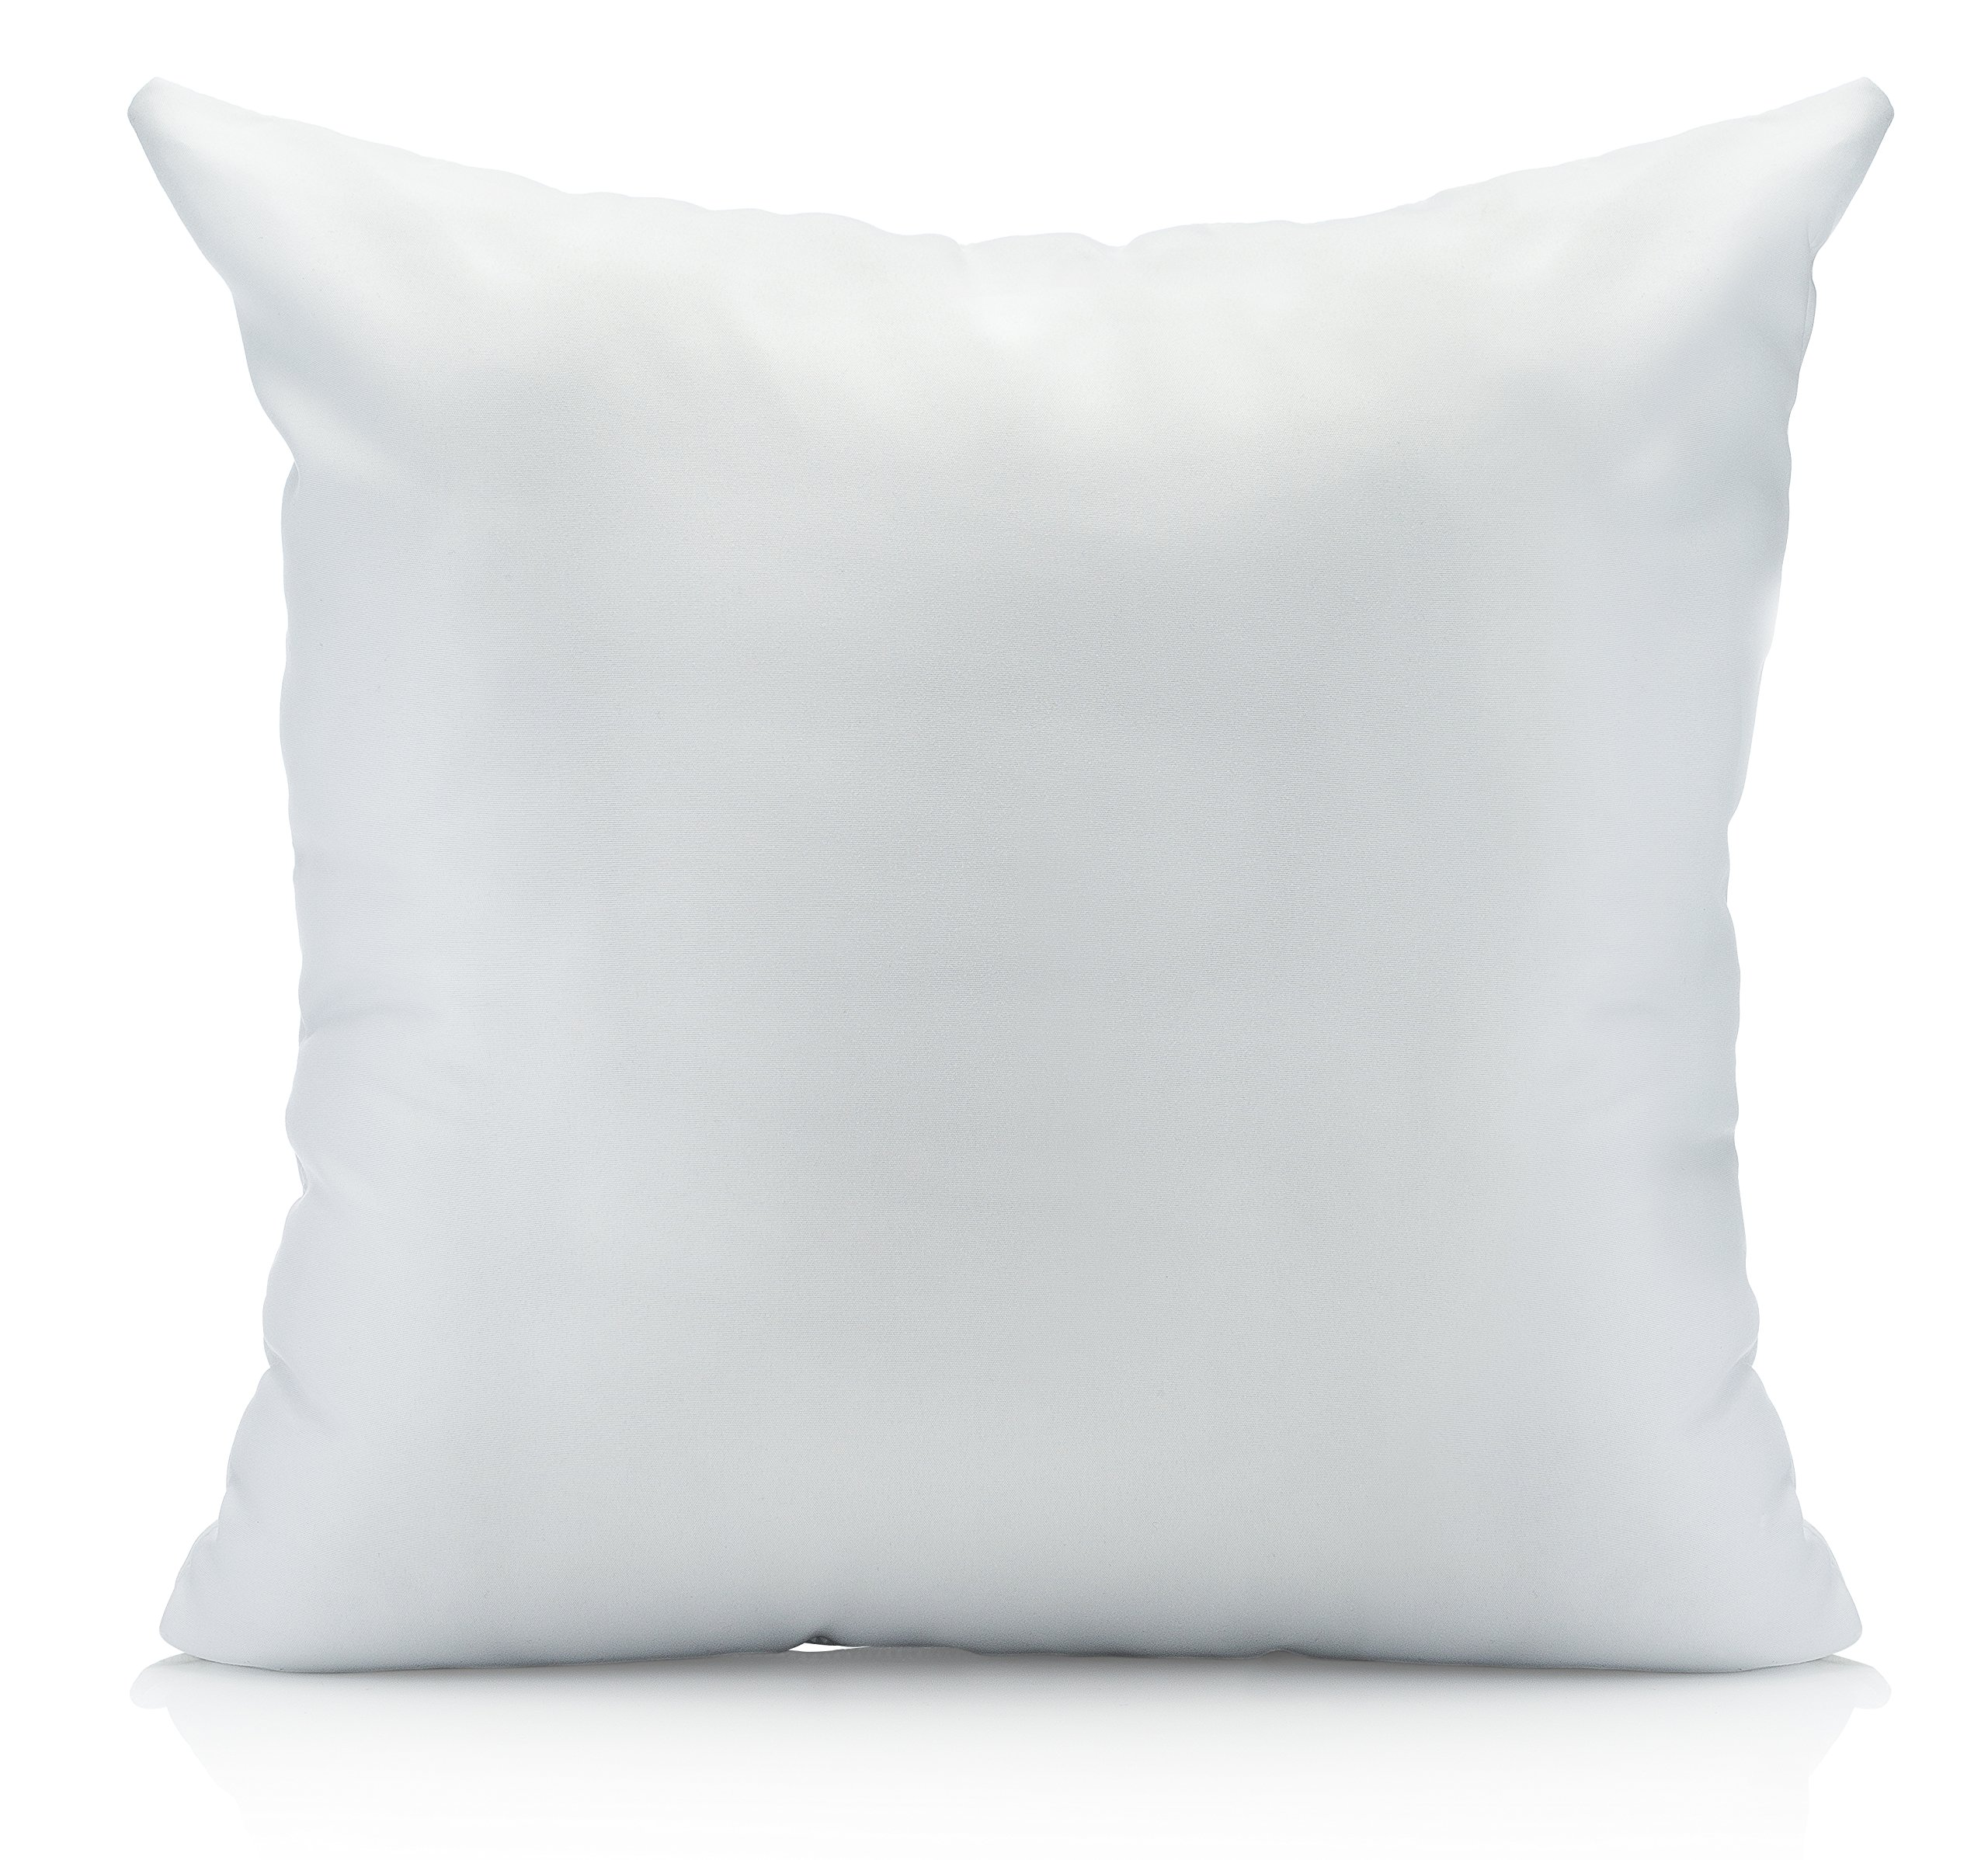 Oh, Susannah 18 x 18 Pillow Inserts Woven Fabric - USA Made and Washable (1 18x18 inch Pillow Throw)